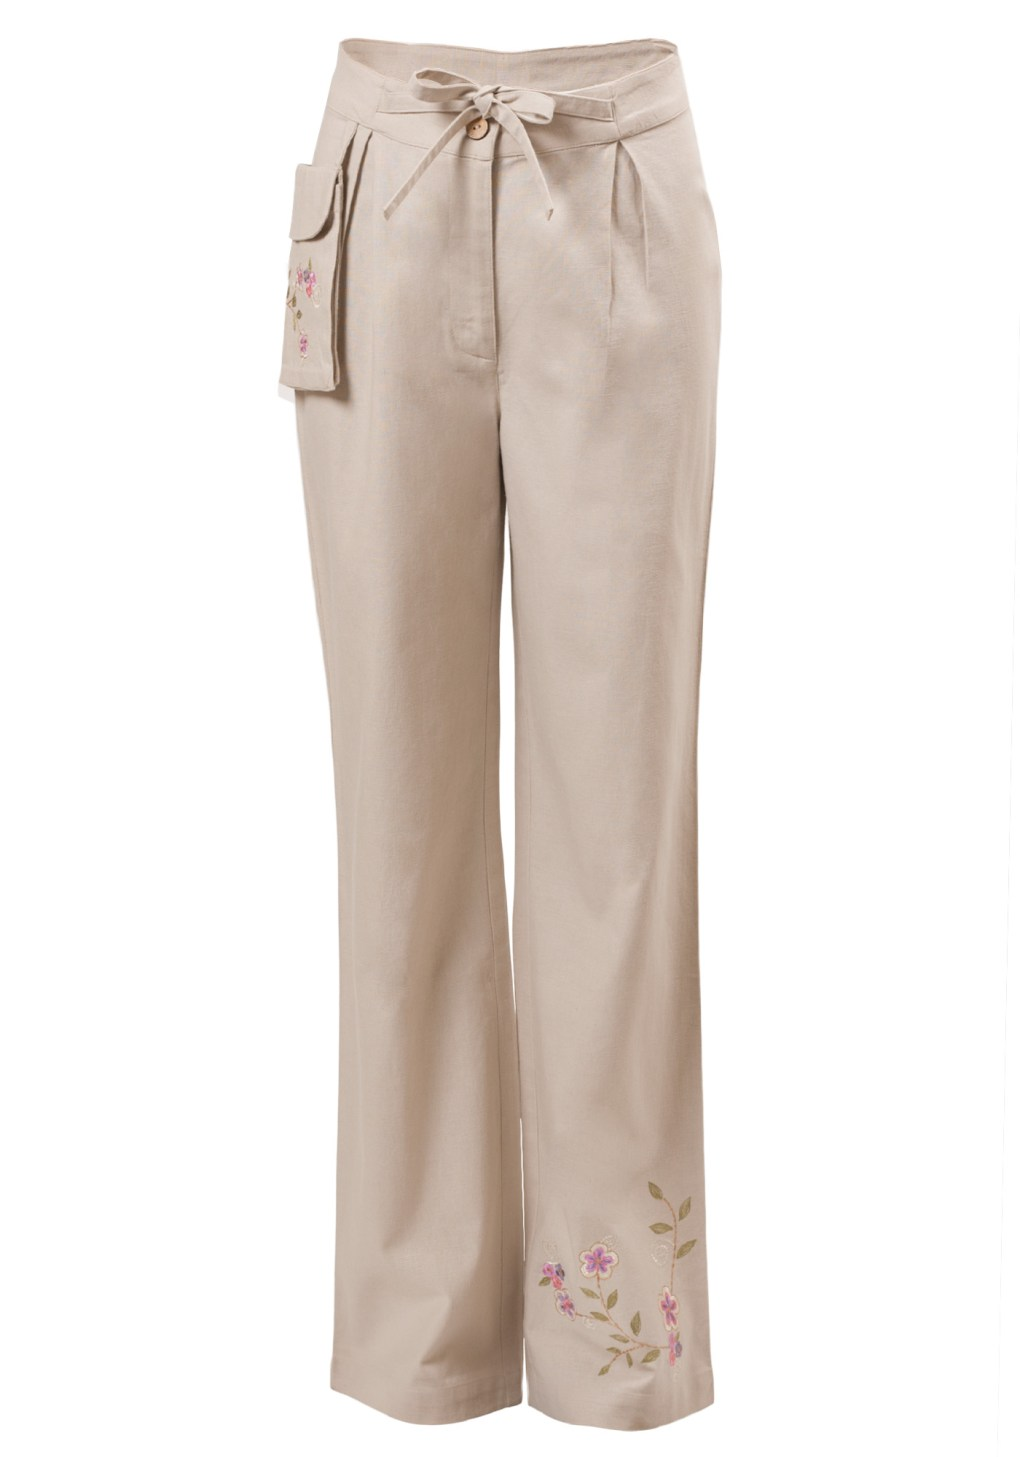 MINC Petite Sweet Pea Girls Embroidered Trousers in Off-White Cotton Linen